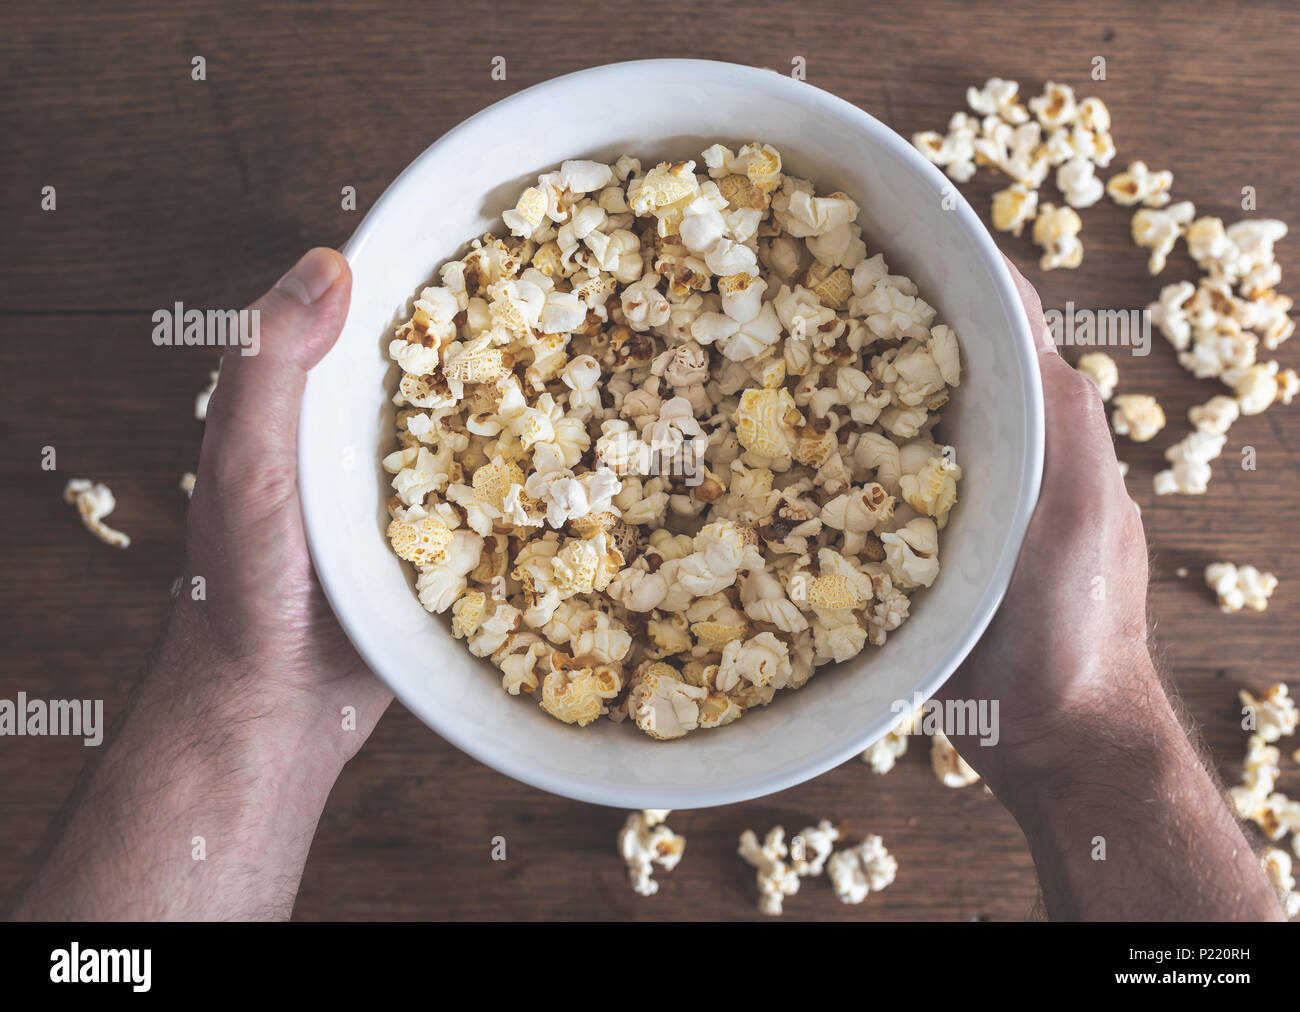 hands holding bowl filled with popcorn above wooden table - Stock Image